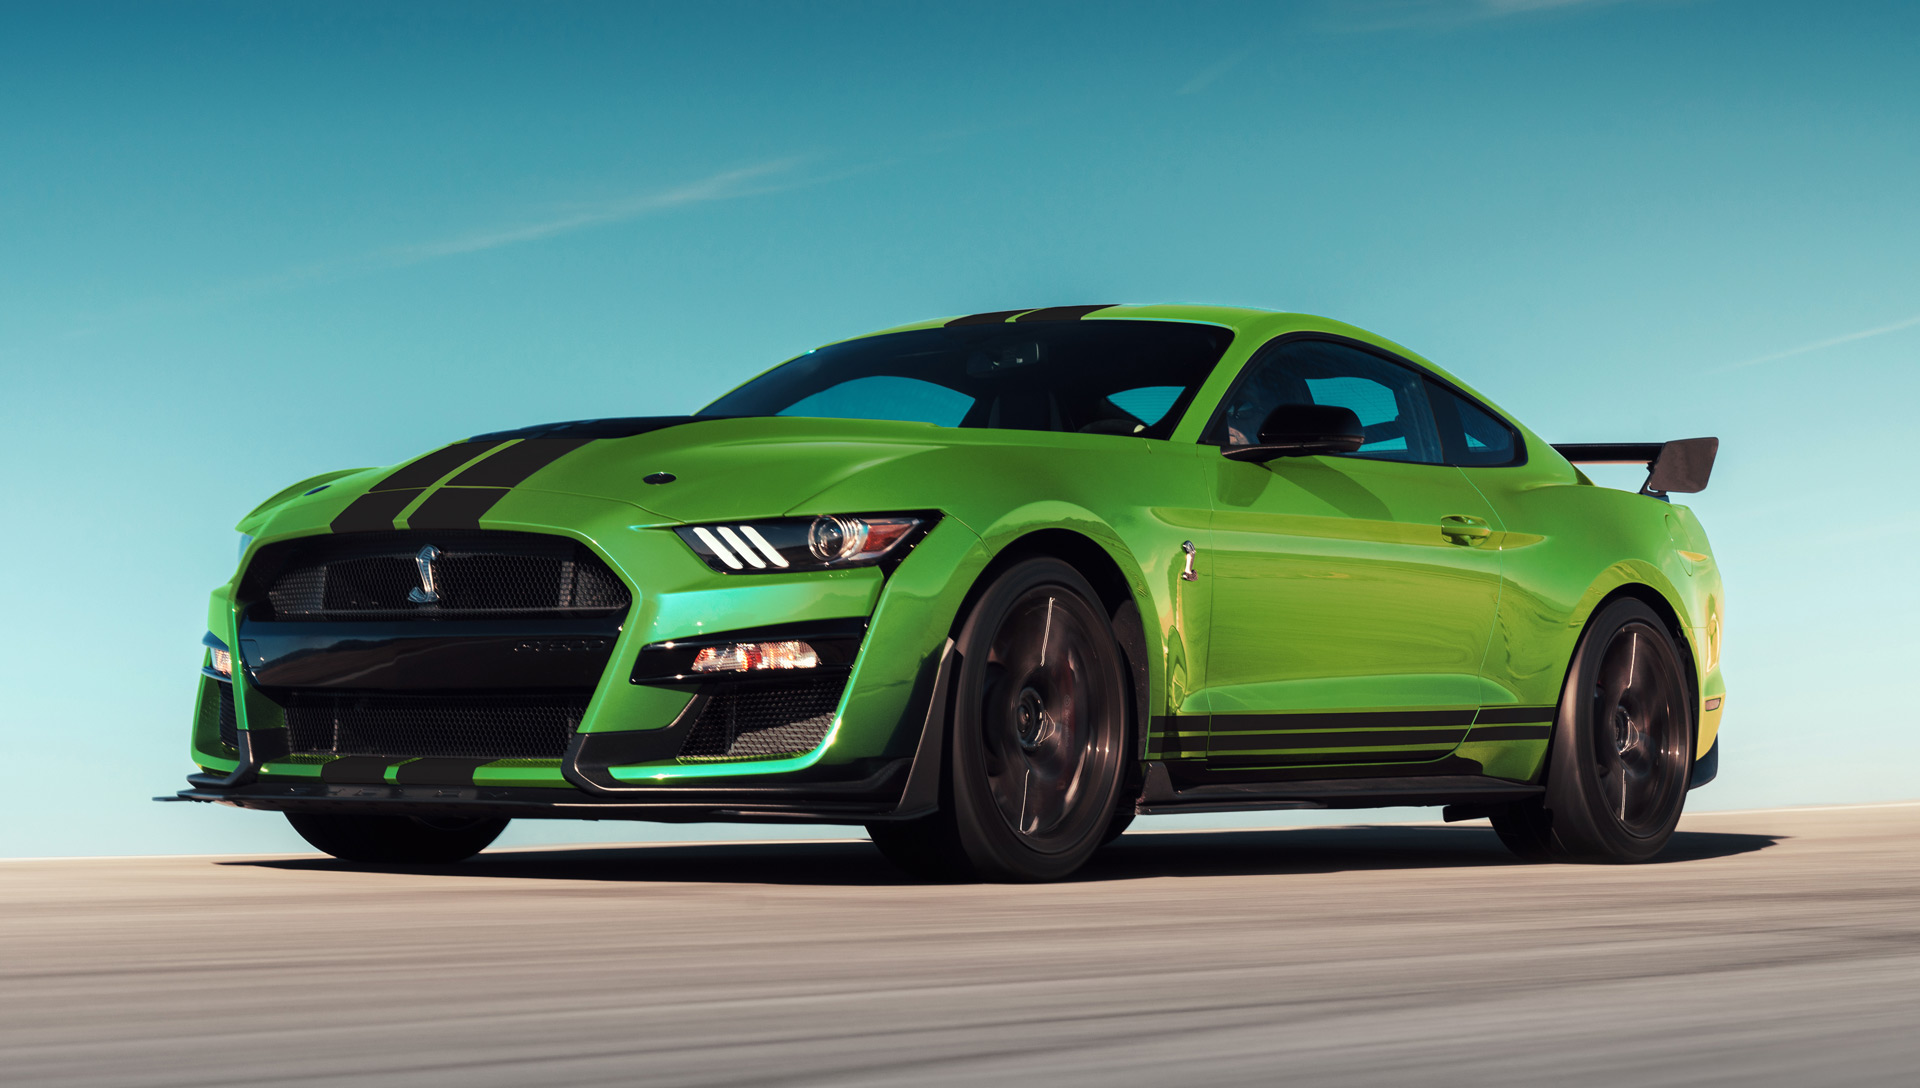 24 New 2020 Mustang Rocket Release Date and Concept